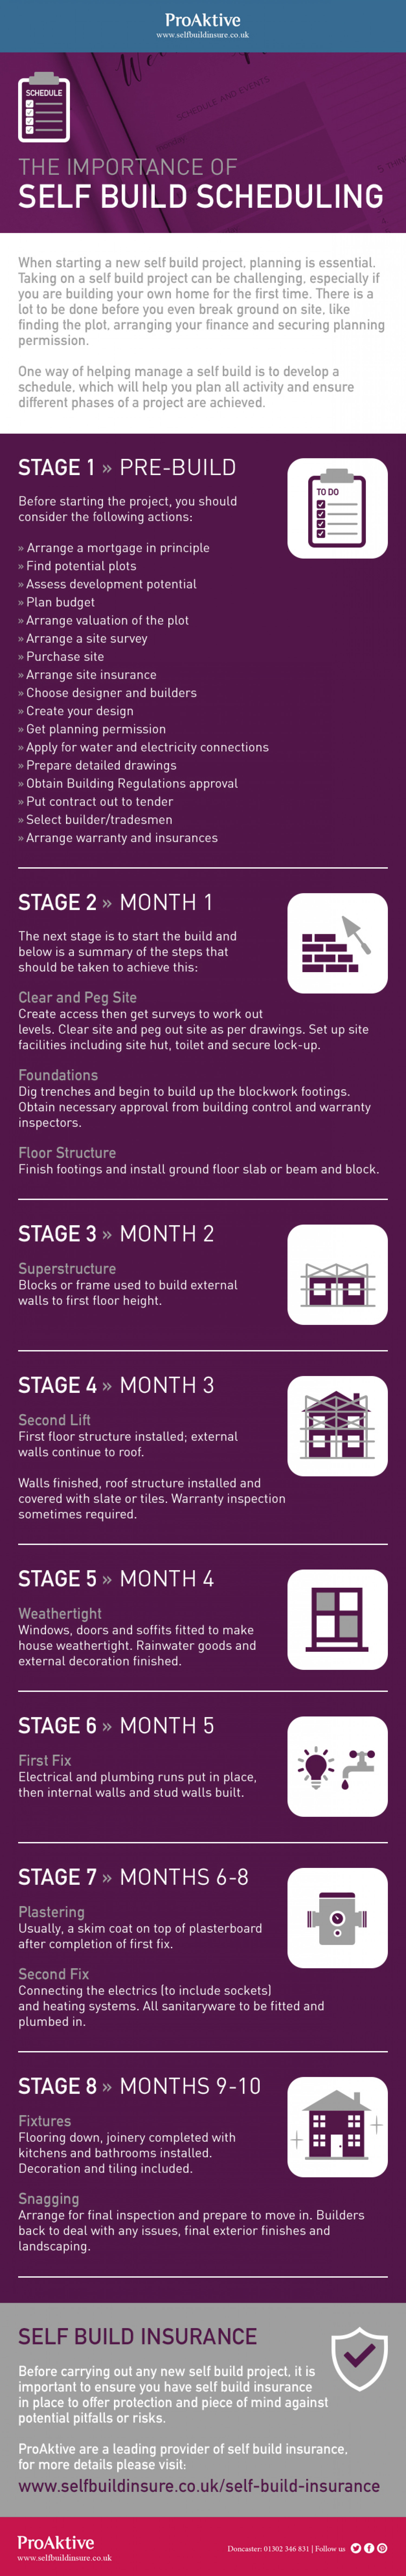 The Importance of Self Build Scheduling Infographic